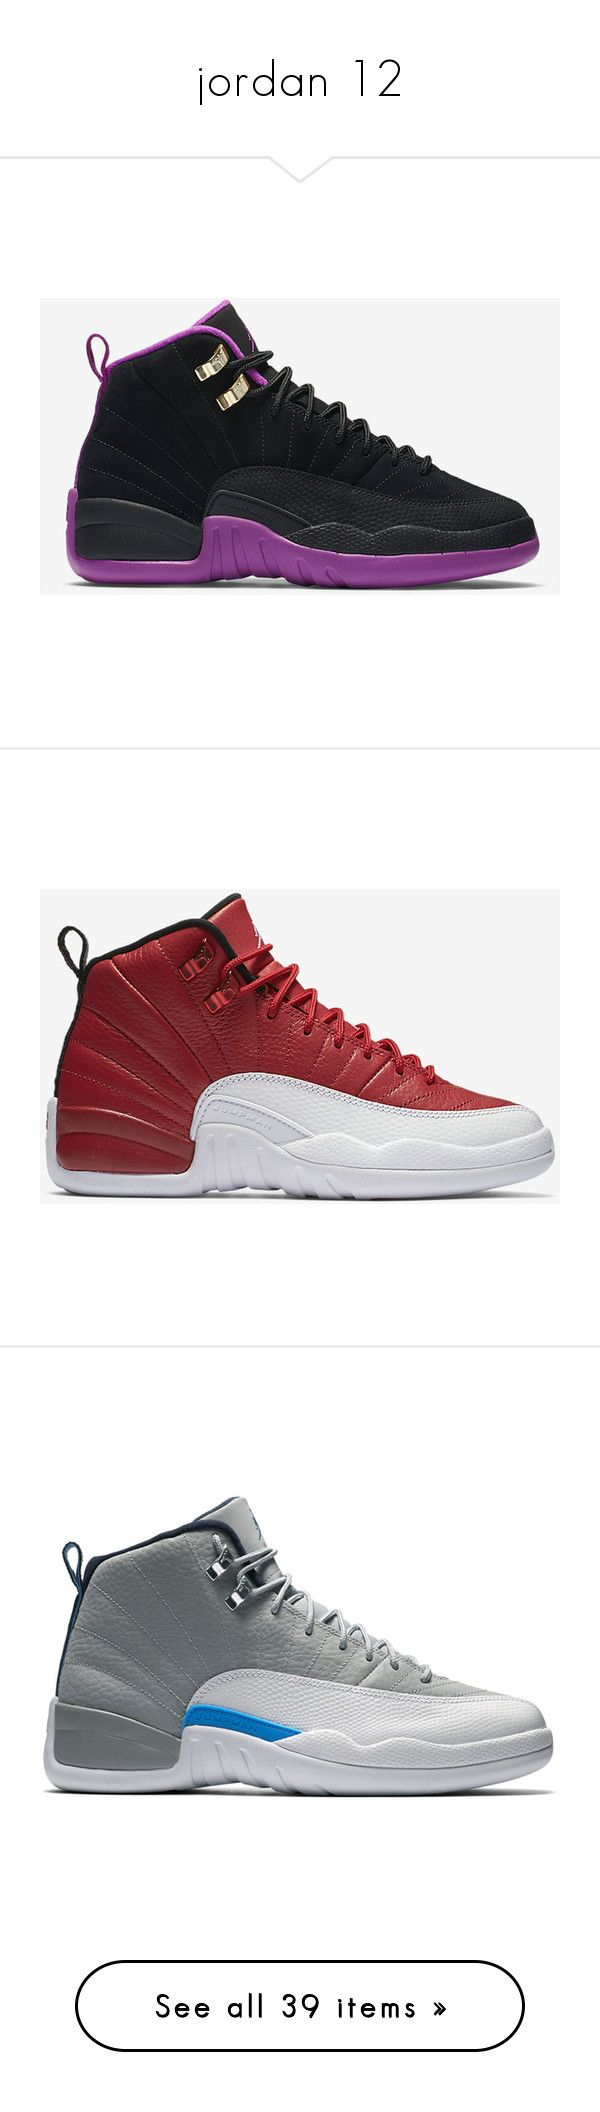 """jordan 12"" by aniahrhichkhidd ❤ liked on Polyvore featuring jordans, shoes, jordan 12, sneakers, men's fashion, men's shoes, men's sneakers, mens sneakers, mens retro shoes and mens retro sneakers"